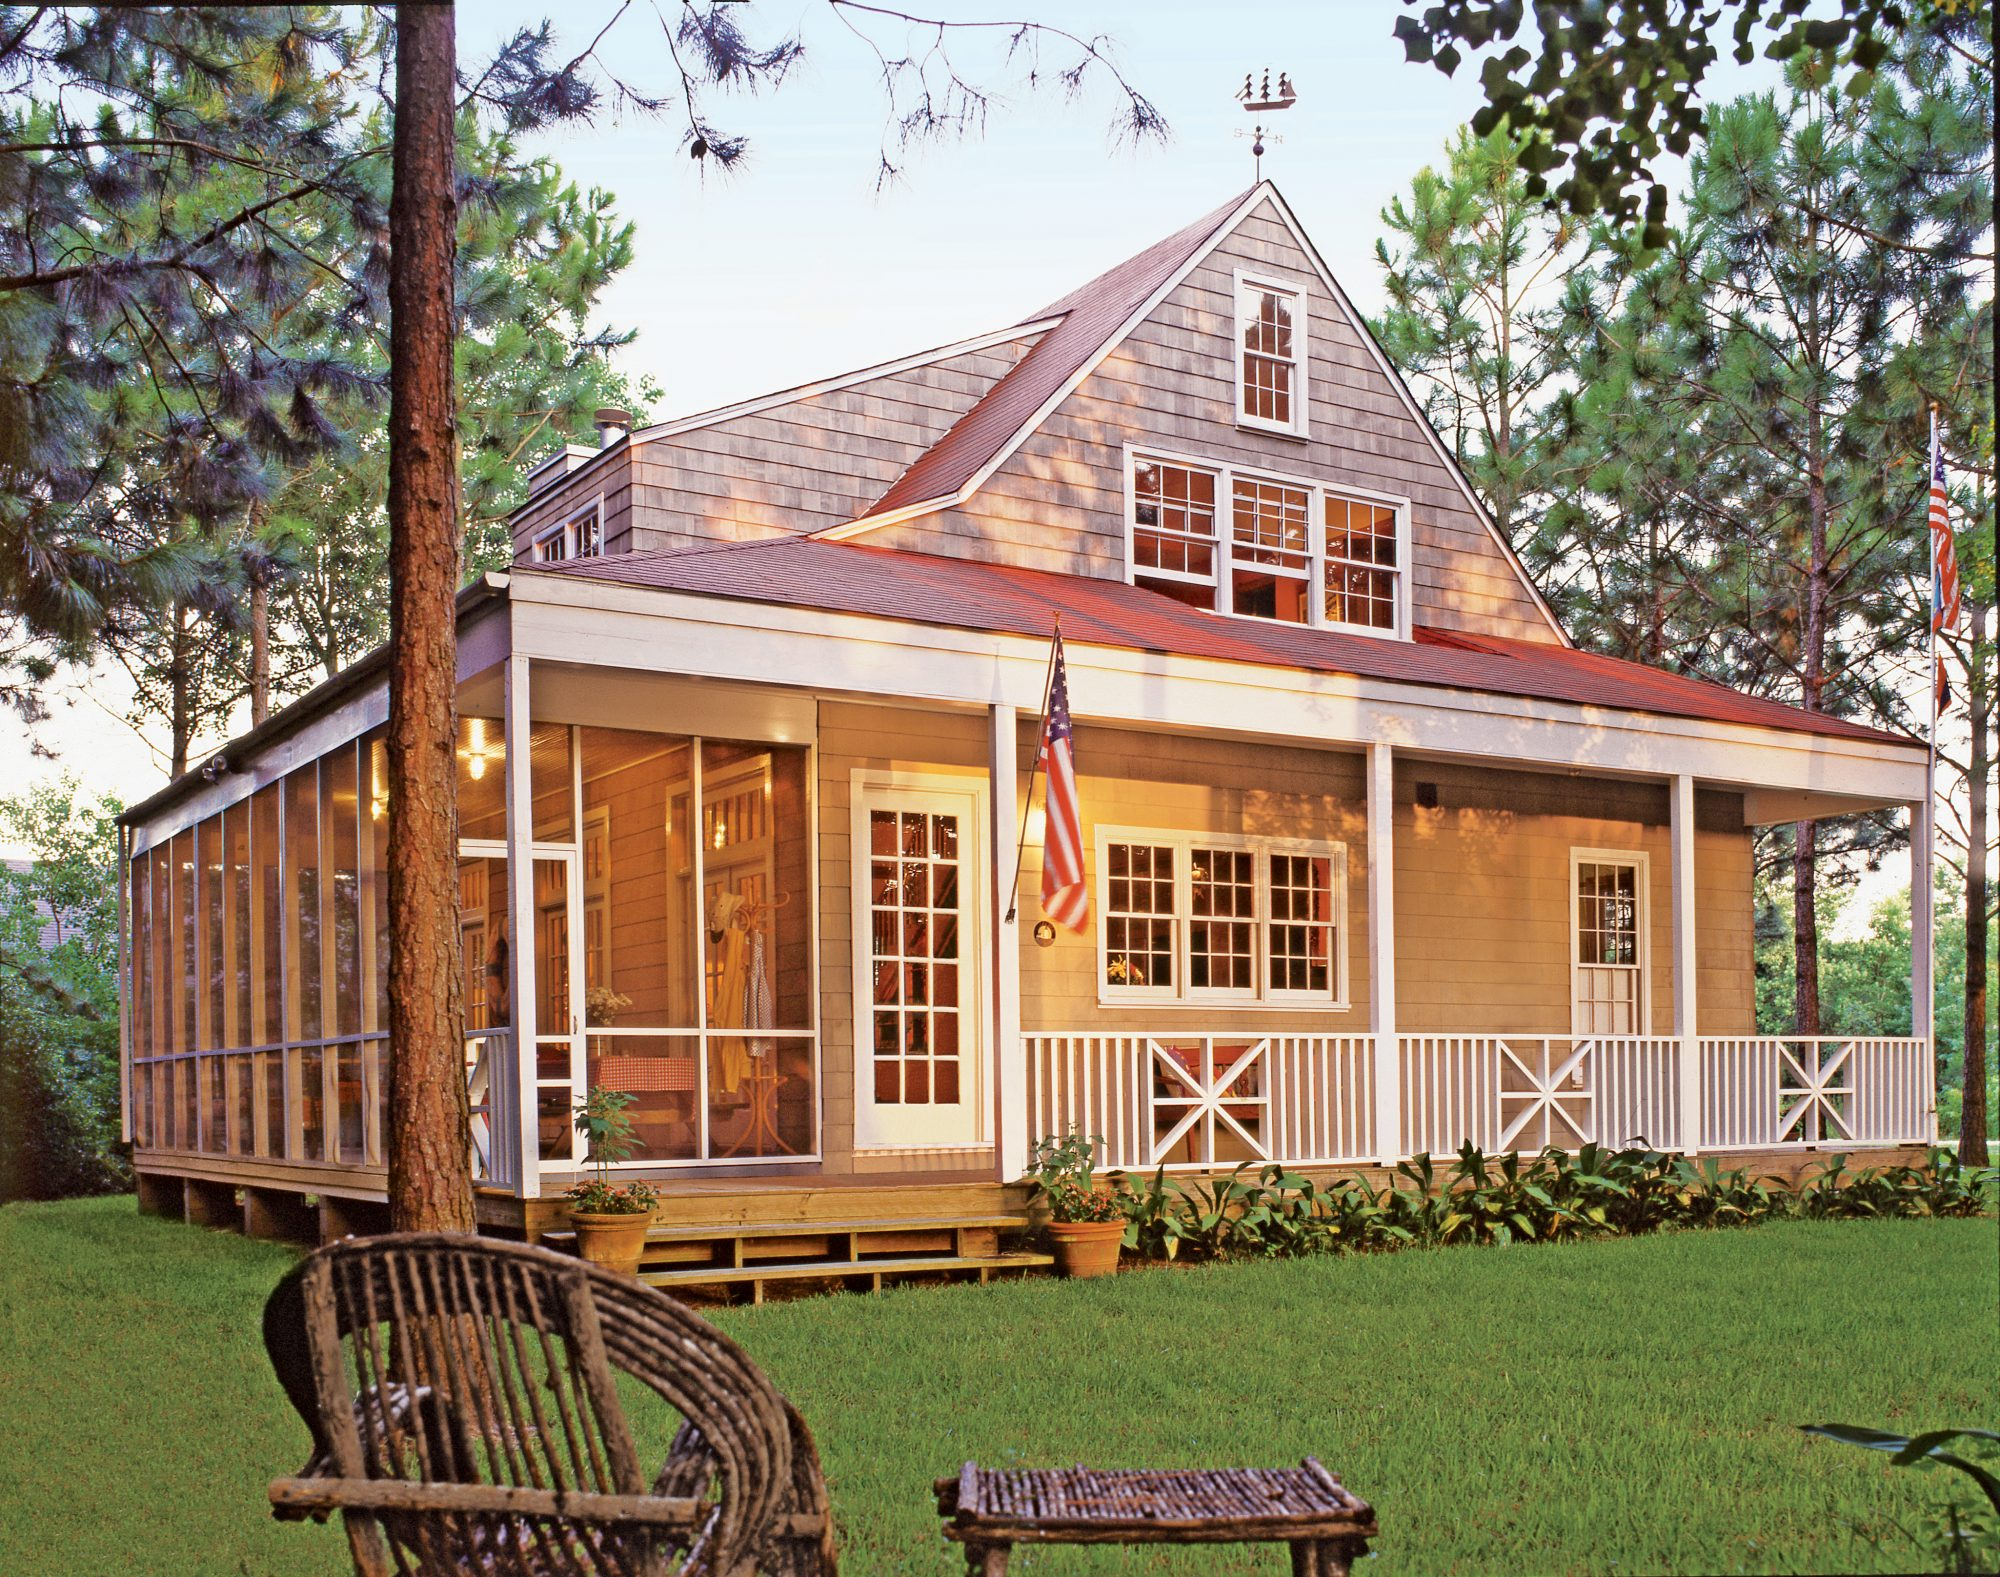 2016 best selling house plans southern living for Southern homes and gardens house plans